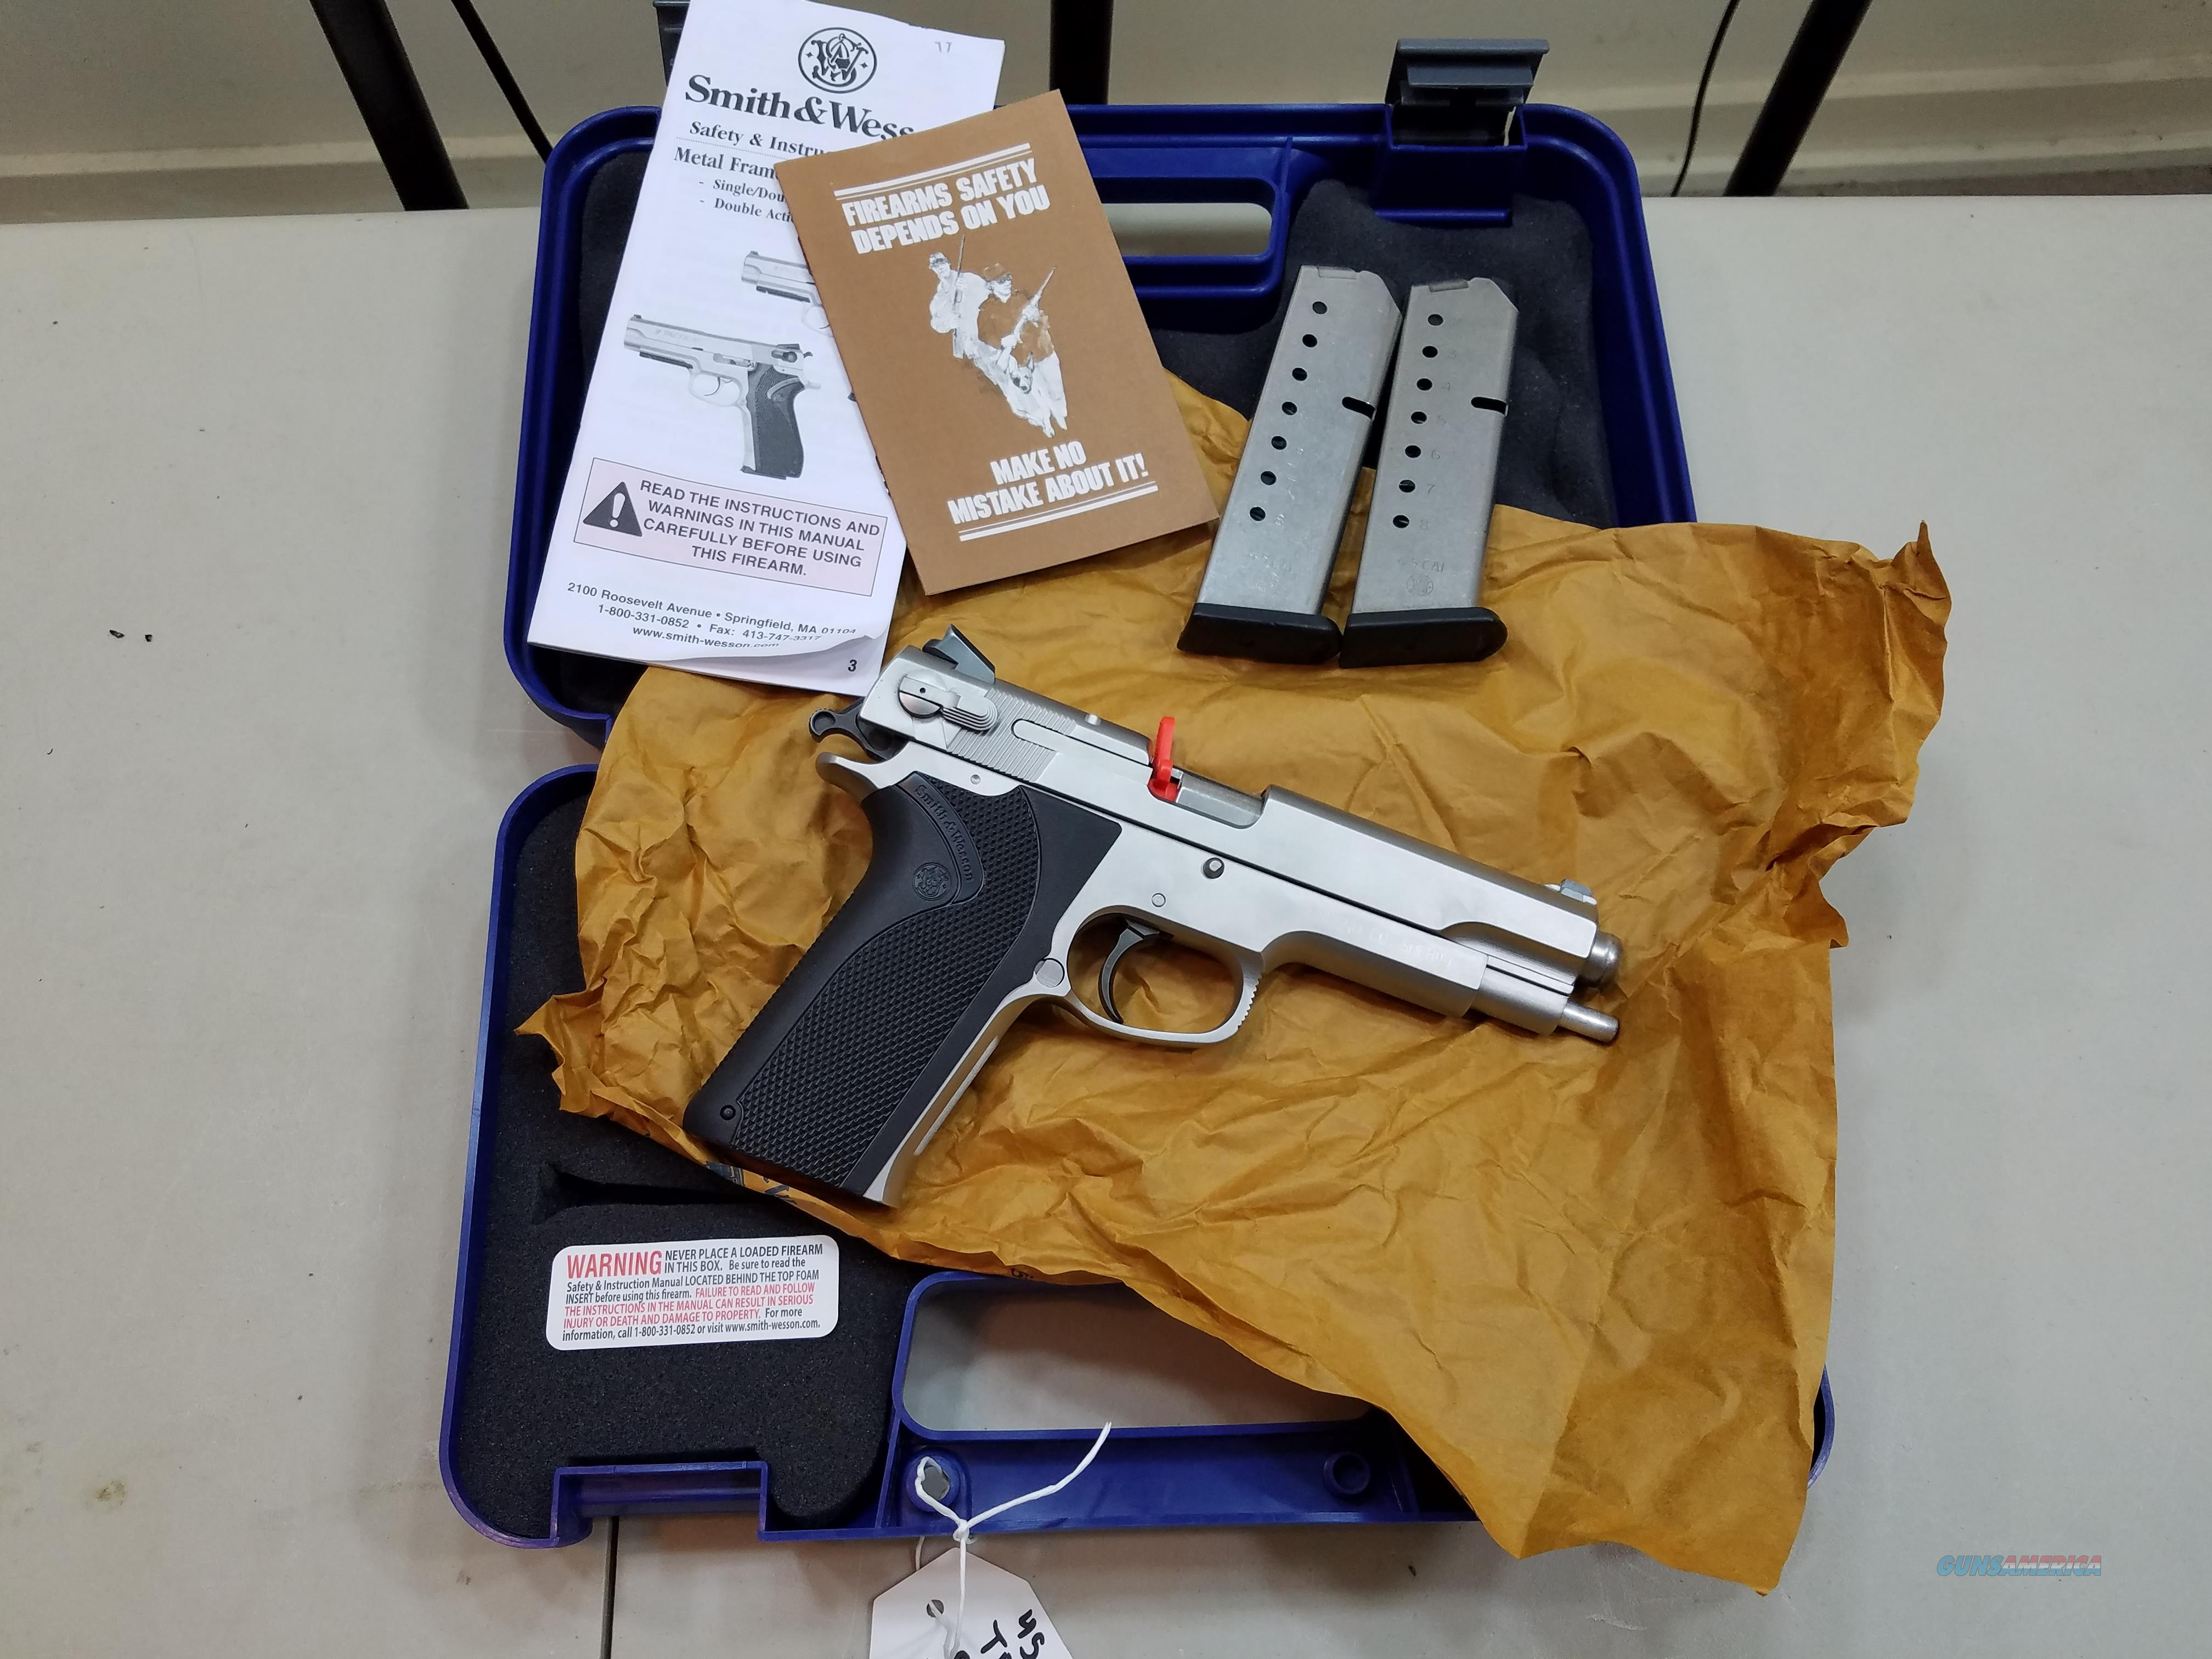 SMITH&WESSON  4506  Guns > Pistols > Smith & Wesson Pistols - Autos > Steel Frame